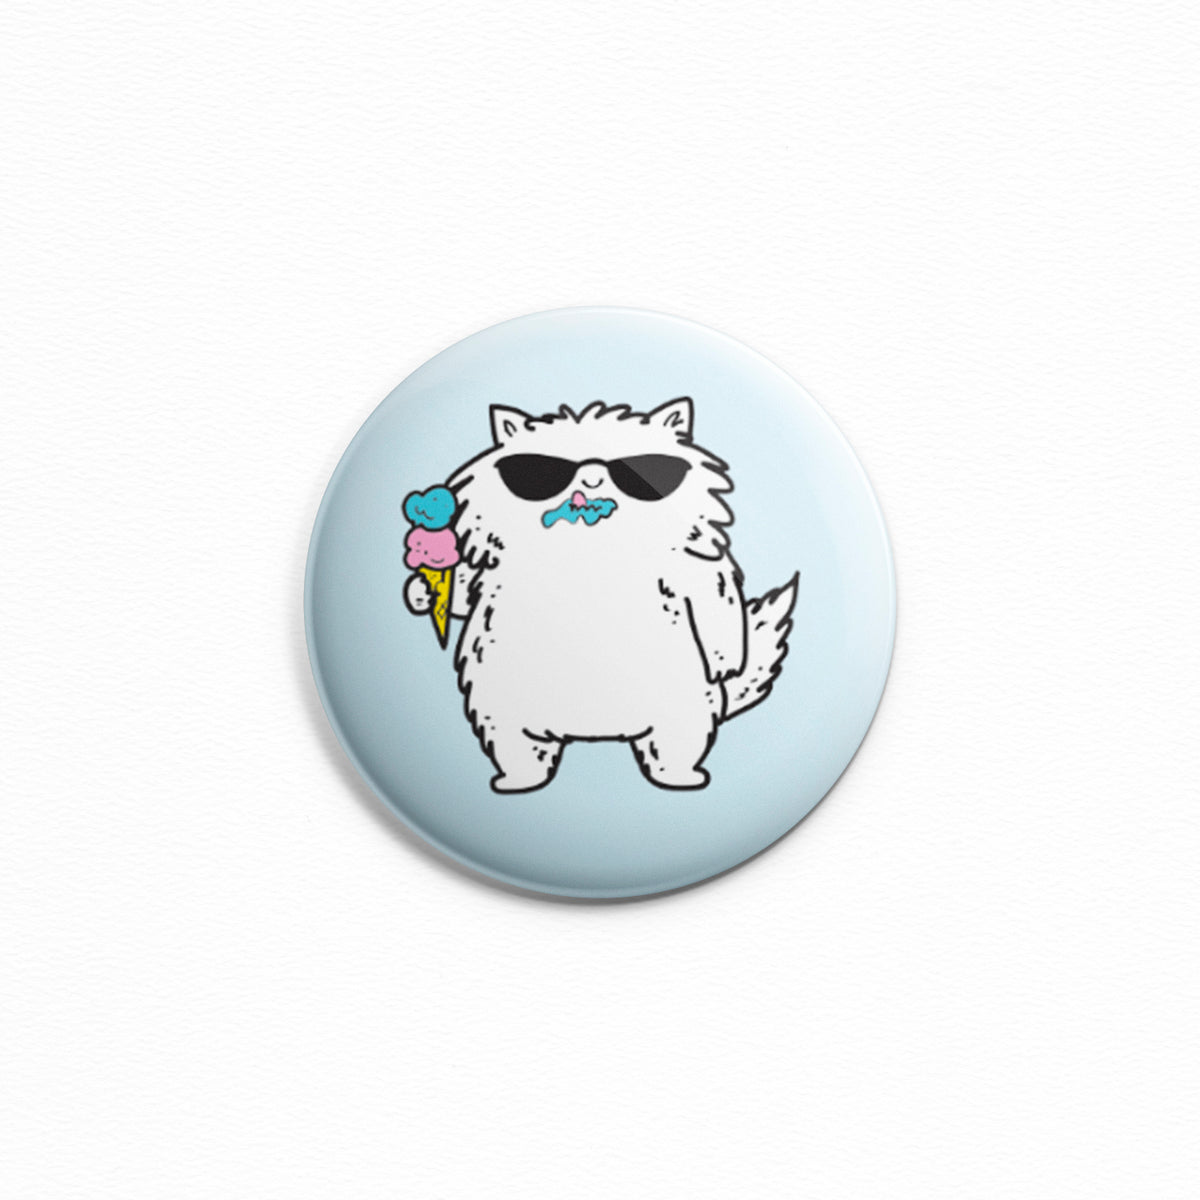 Ice Cream Cat - Button or magnet of a cat wearing sunglasses and holding an ice cream cone. He doesn't care that he has ice cream all over this face! Summer vibes.